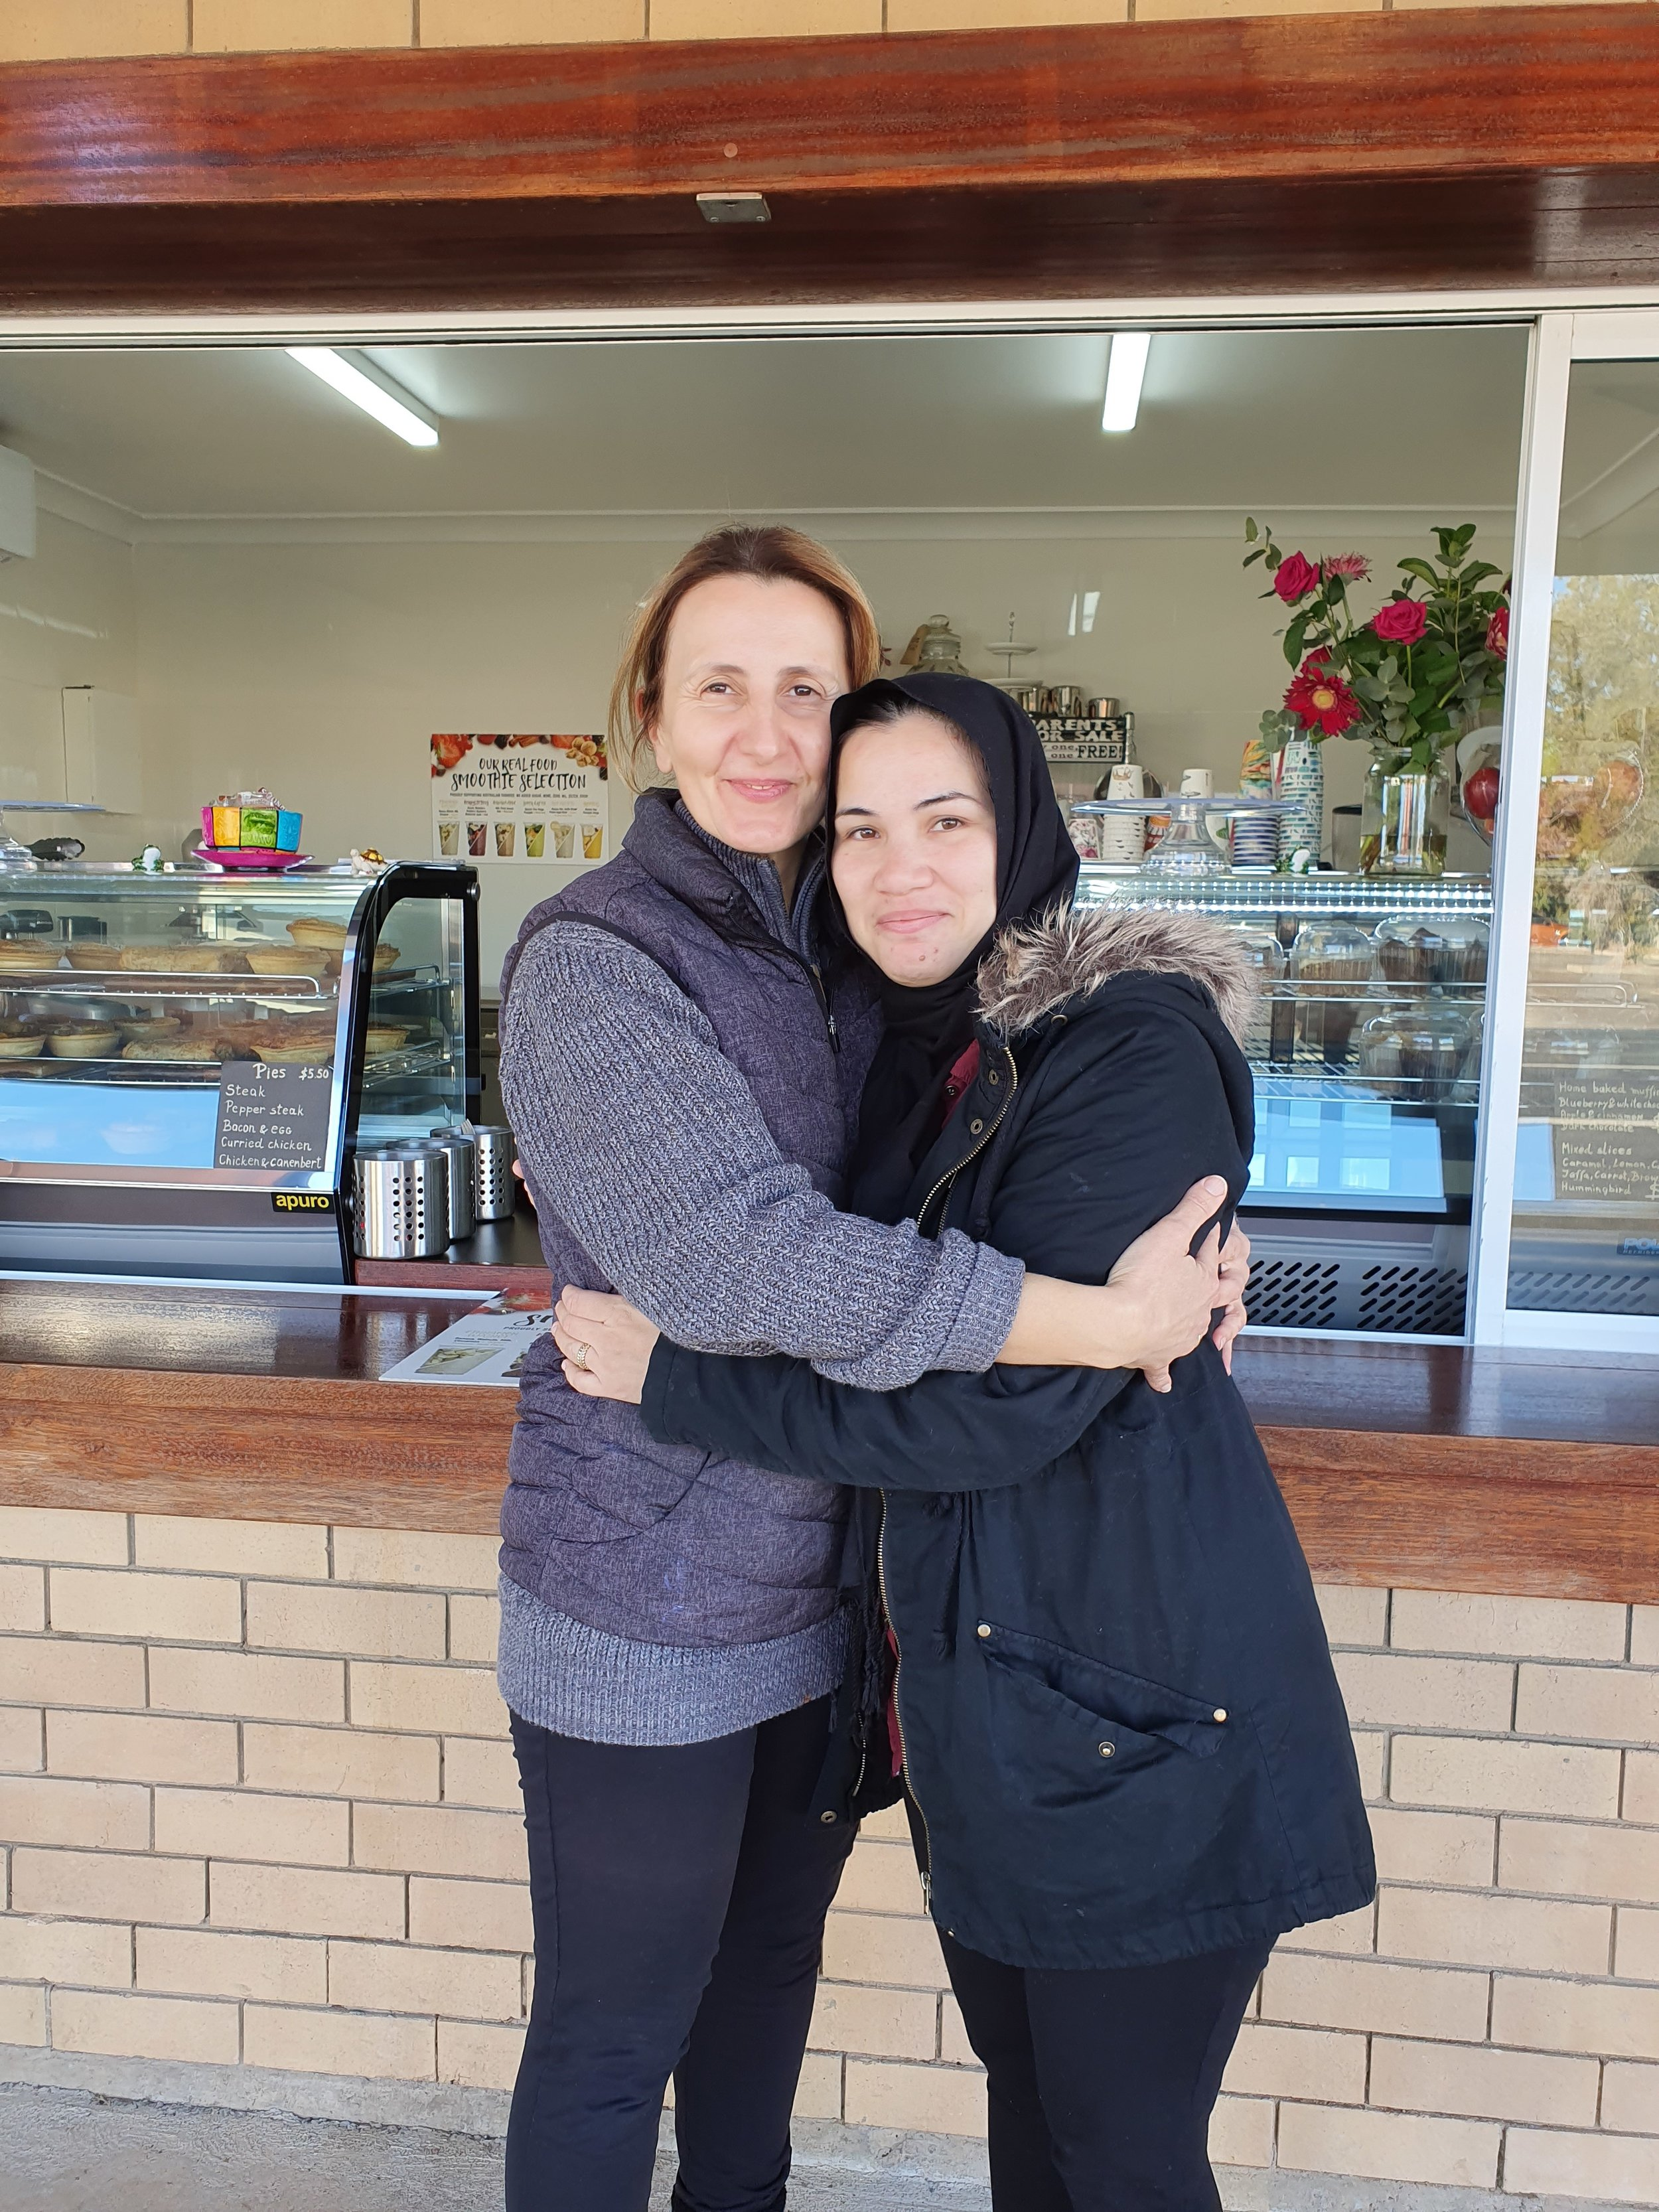 Vesna runs the Jillaroo coffee shop in Moree. She loved meeting someone from Afghanistan, and to speak about Khalid Hosseini's books. We got our coffe's for free and it gave our day a great start.jpg